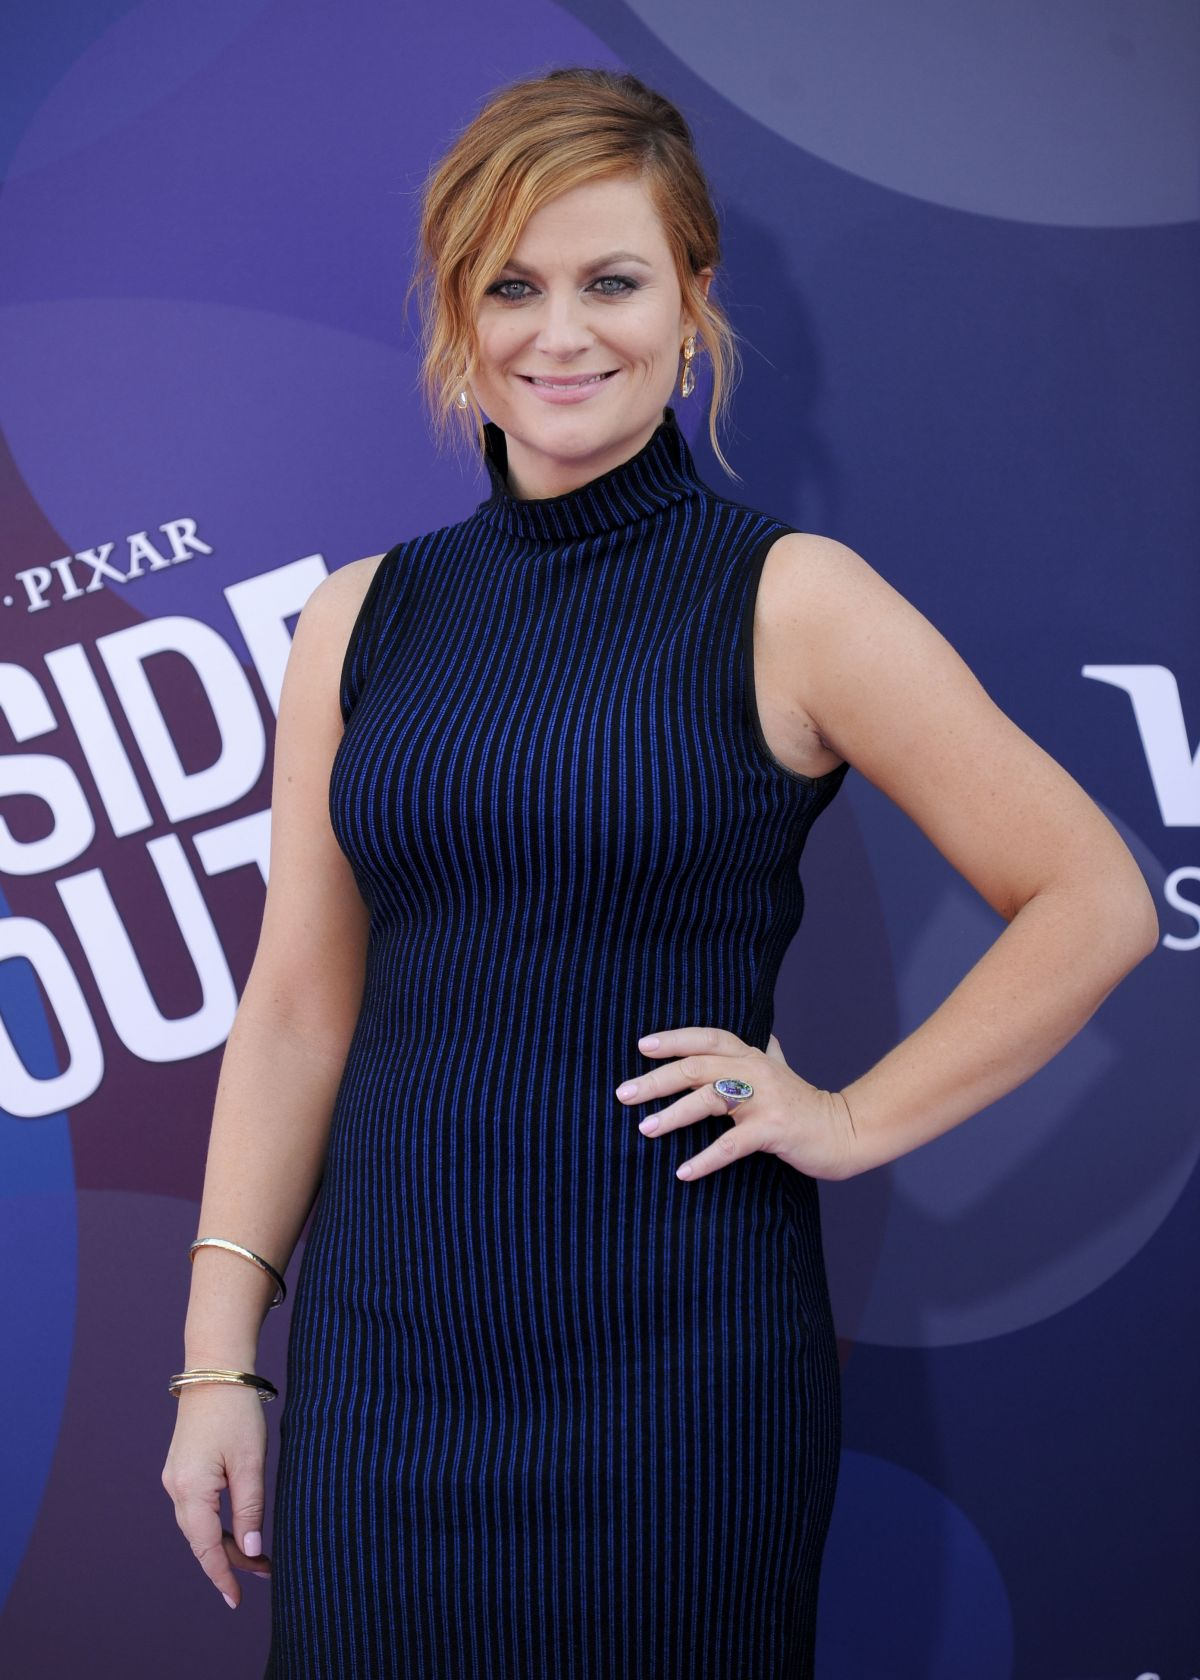 AMY POEHLER at Inside Out Premiere in Hollywood  HawtCelebs